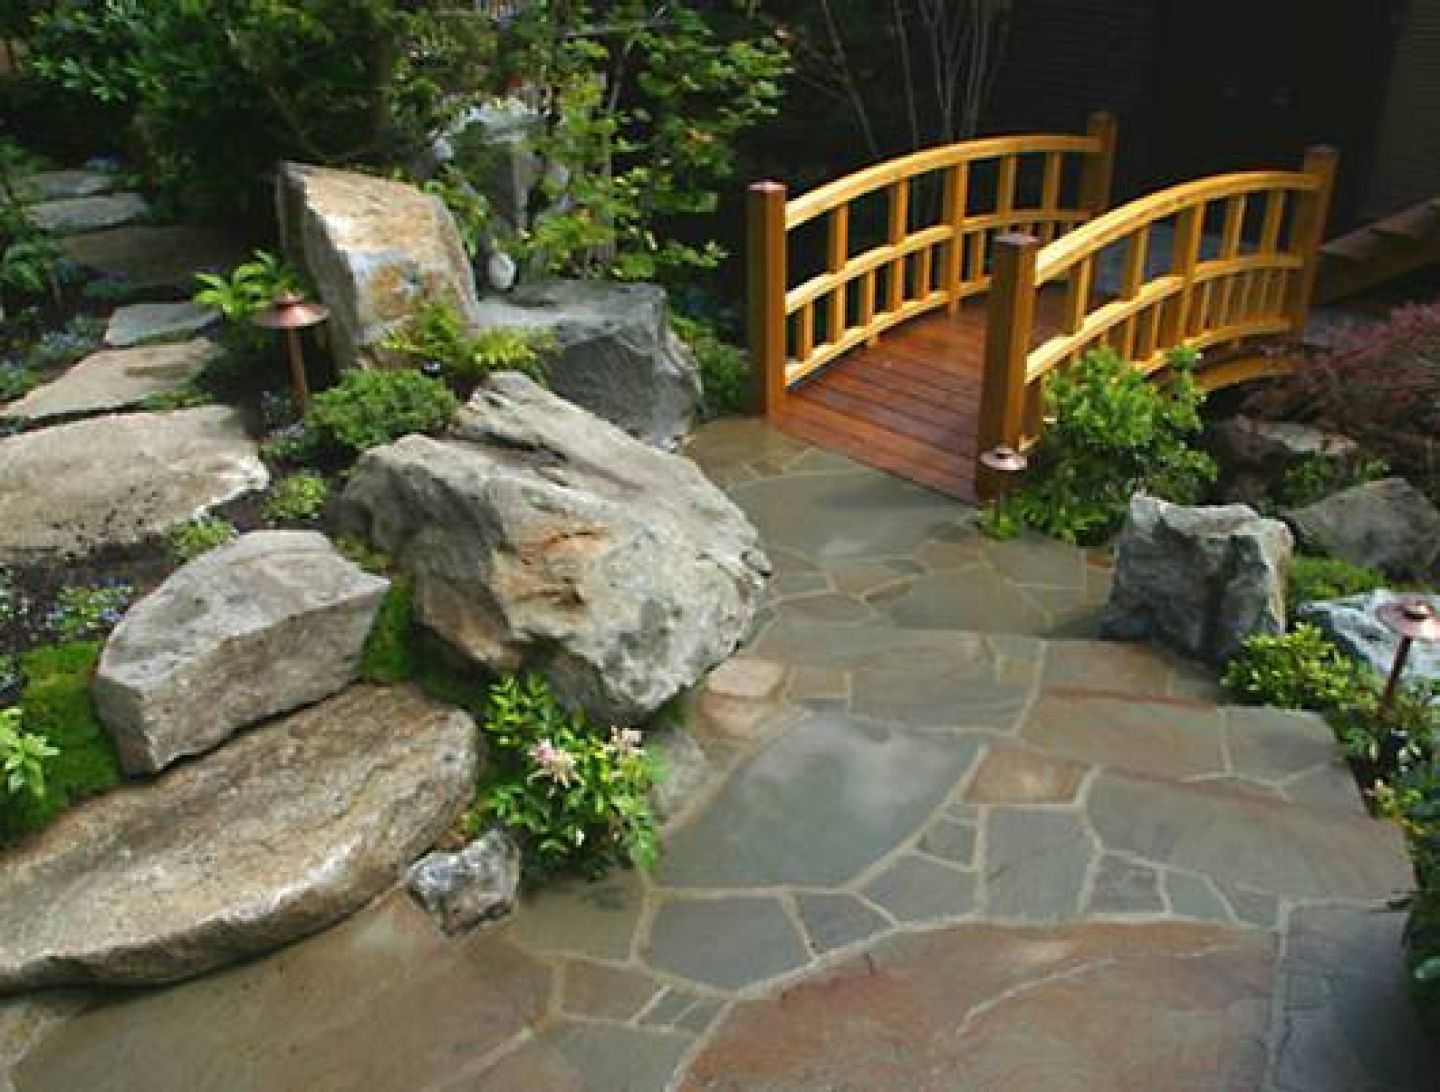 Fantastic Japanese Backyard Garden Design Idea with Wooden Bridge also Concrete Floor plus Rock